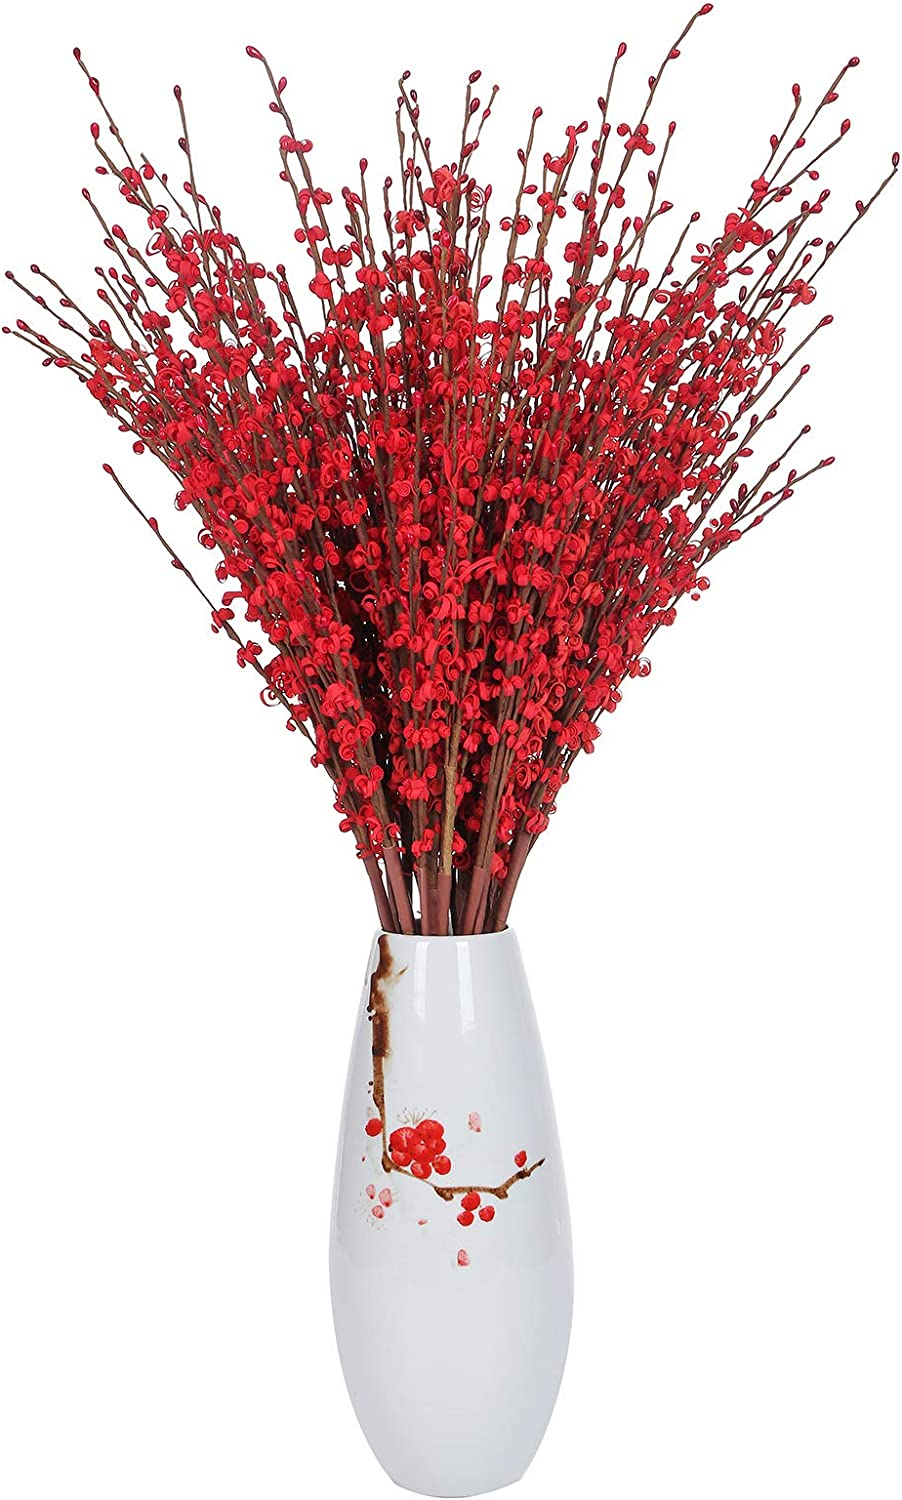 """Momkids 10 Pcs 29.5"""" Long Stem Artificial Jasmine Flowers Tall Fake Flower Bouquet Faux Jasmine Plants for Hotel Home Office Kitchen Bedroom Wedding Party DIY Decor(Red)"""